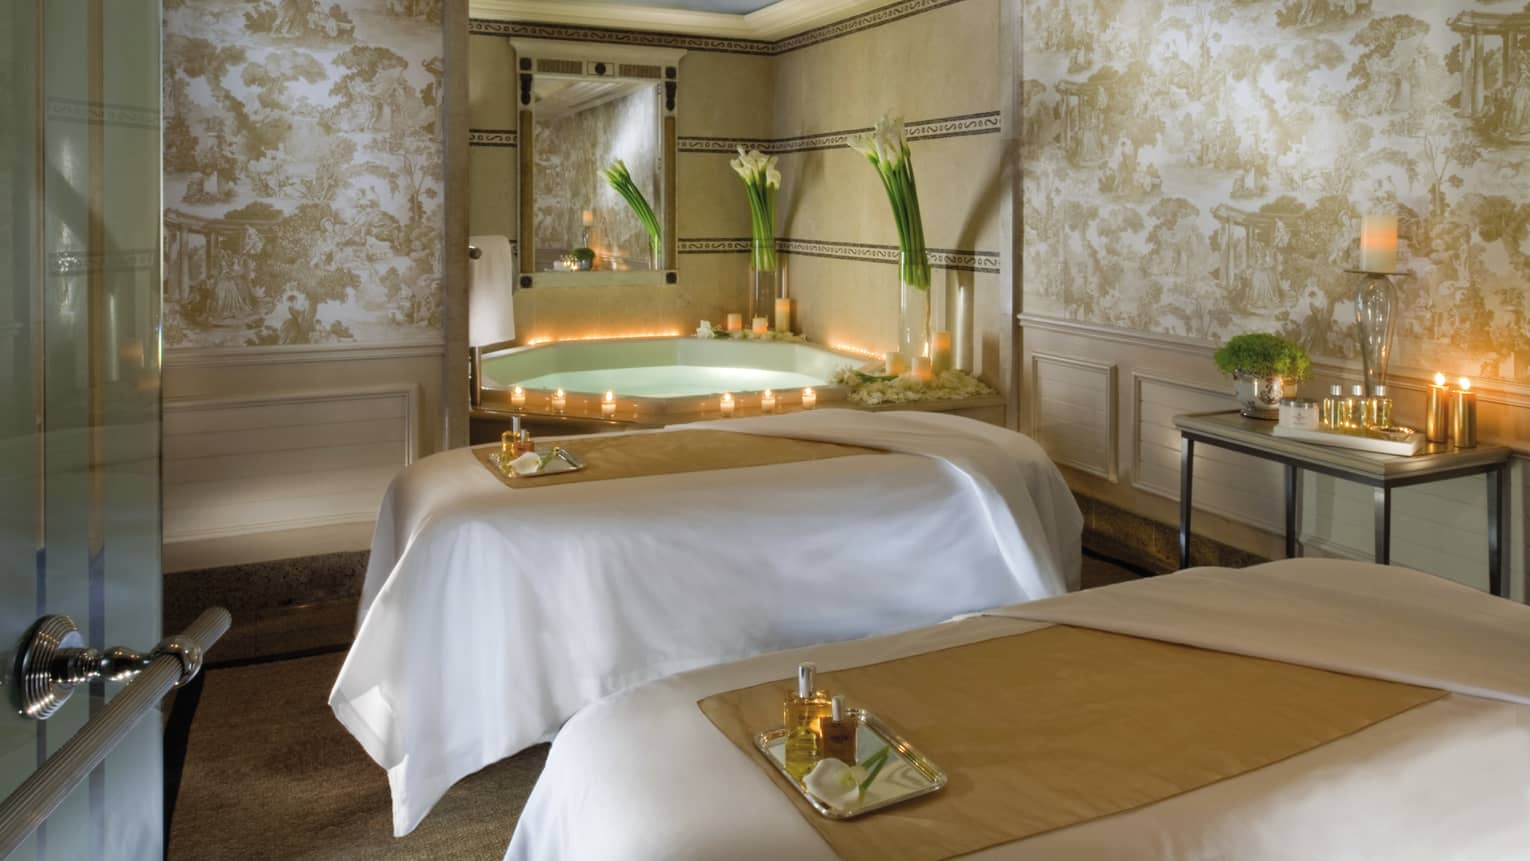 Salon Massage Sexe Paris 5 Star Hotel In Paris Luxury Hotel Four Seasons George